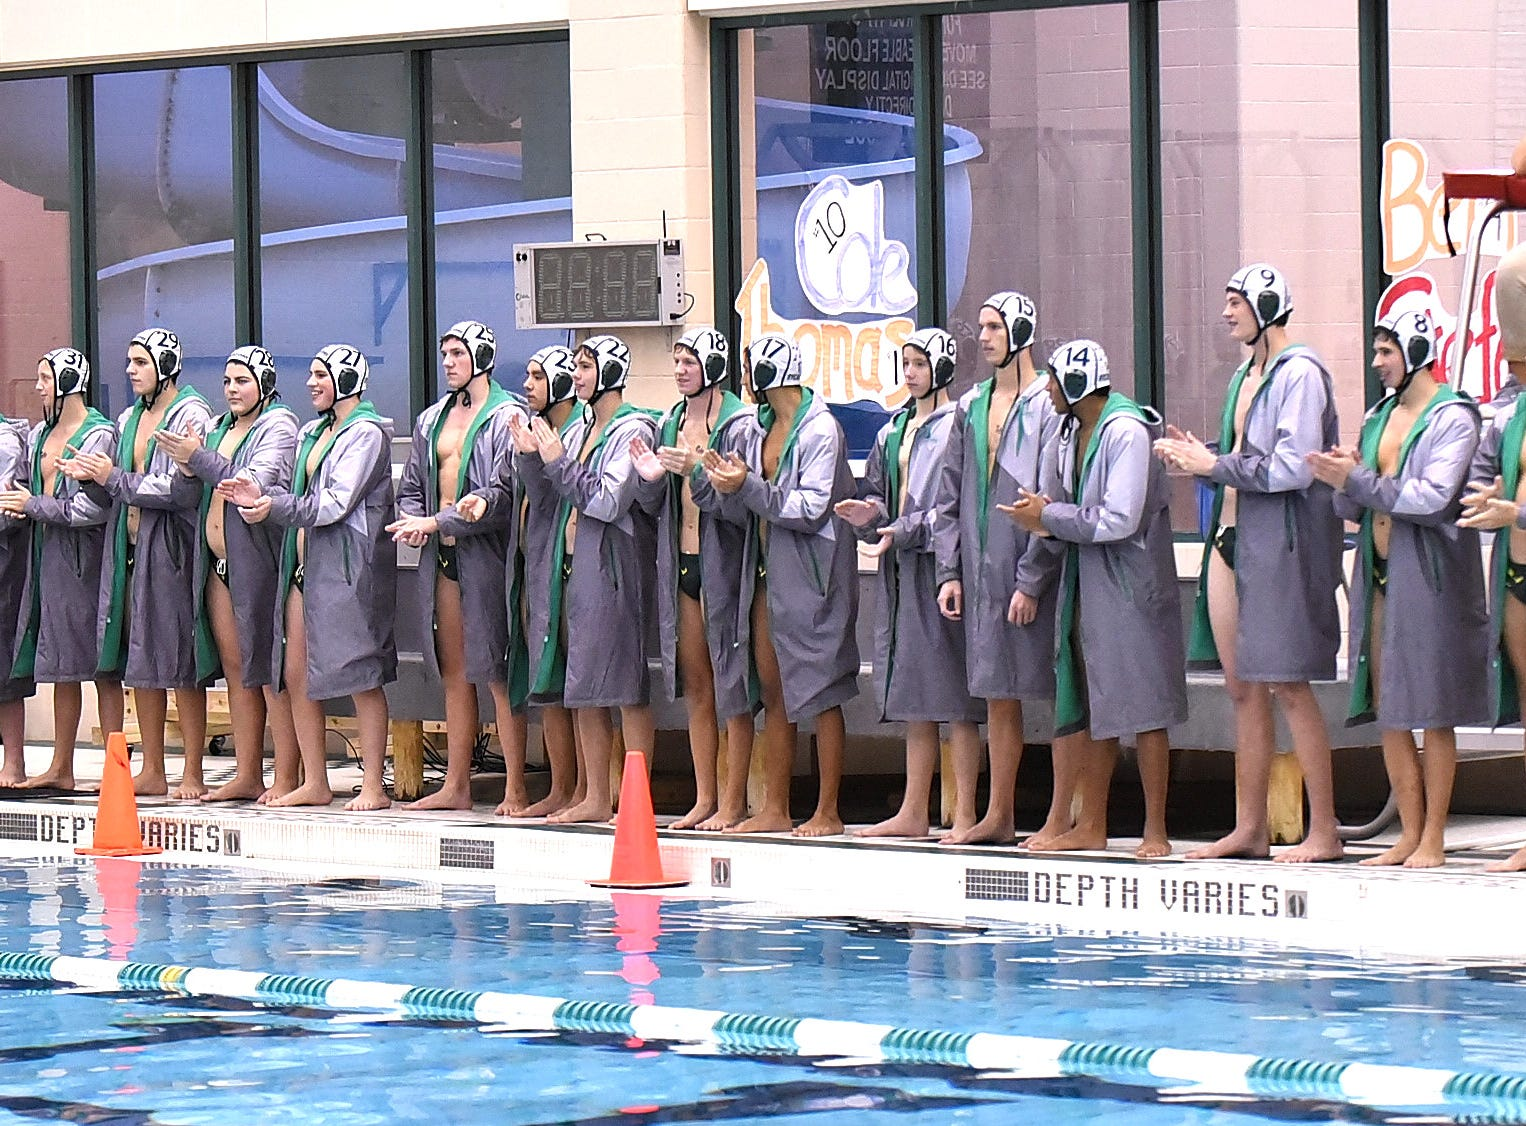 The Sycamore Aviators are introduced at the 2018 Ohio State Boys Water Polo Championship, October 27, 2018.